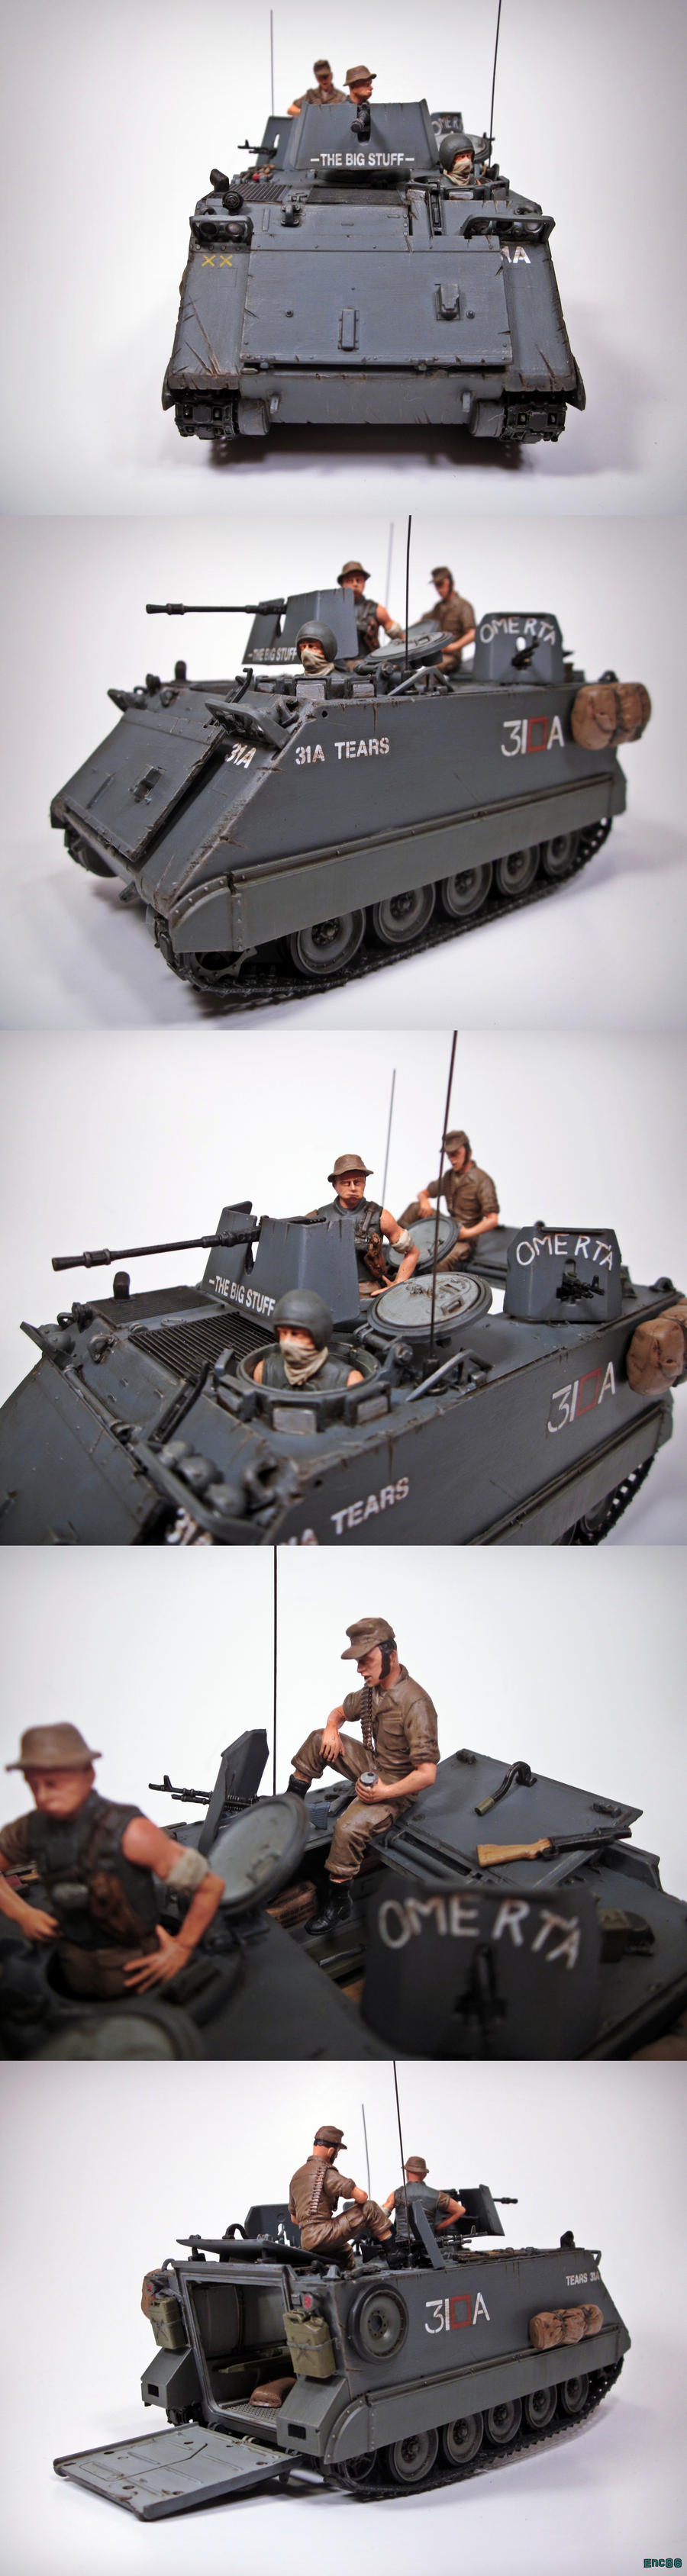 M113 Collage by enc86